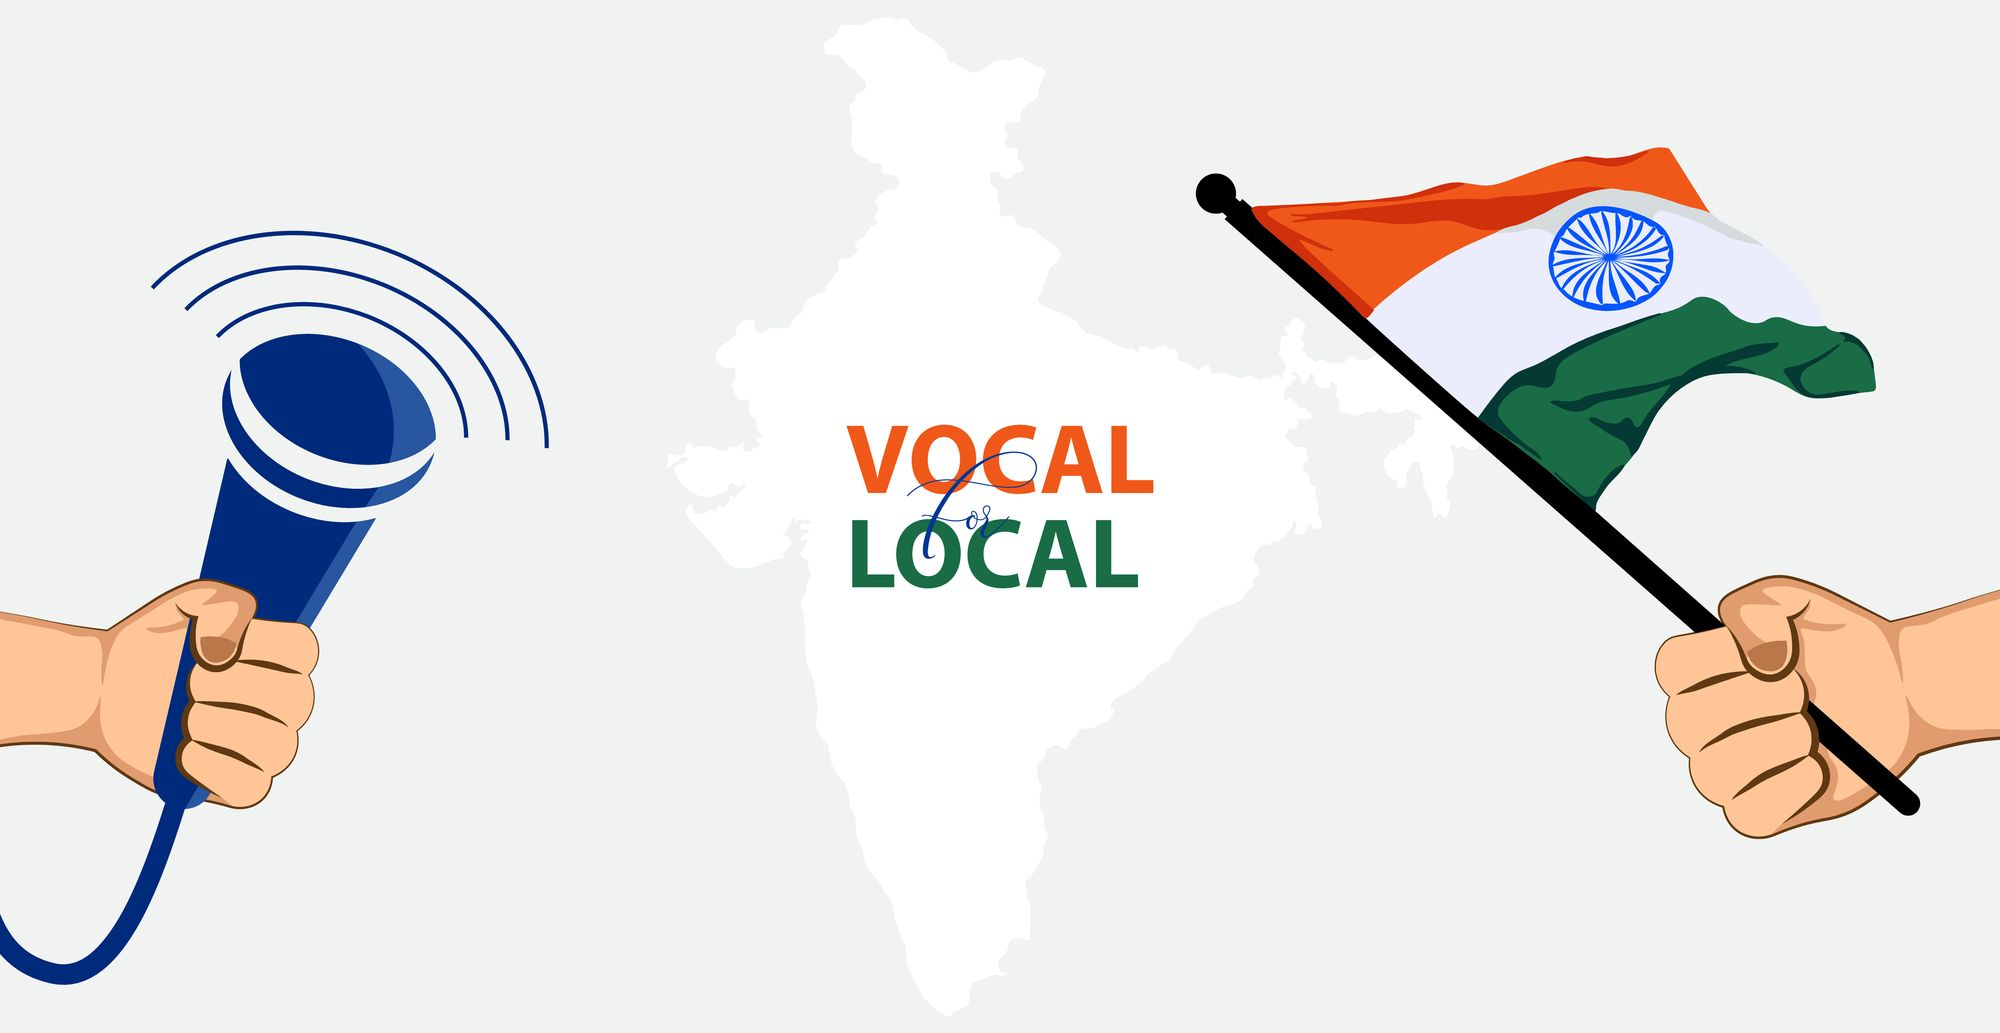 Vocal for Local to make 'Made in India' Global